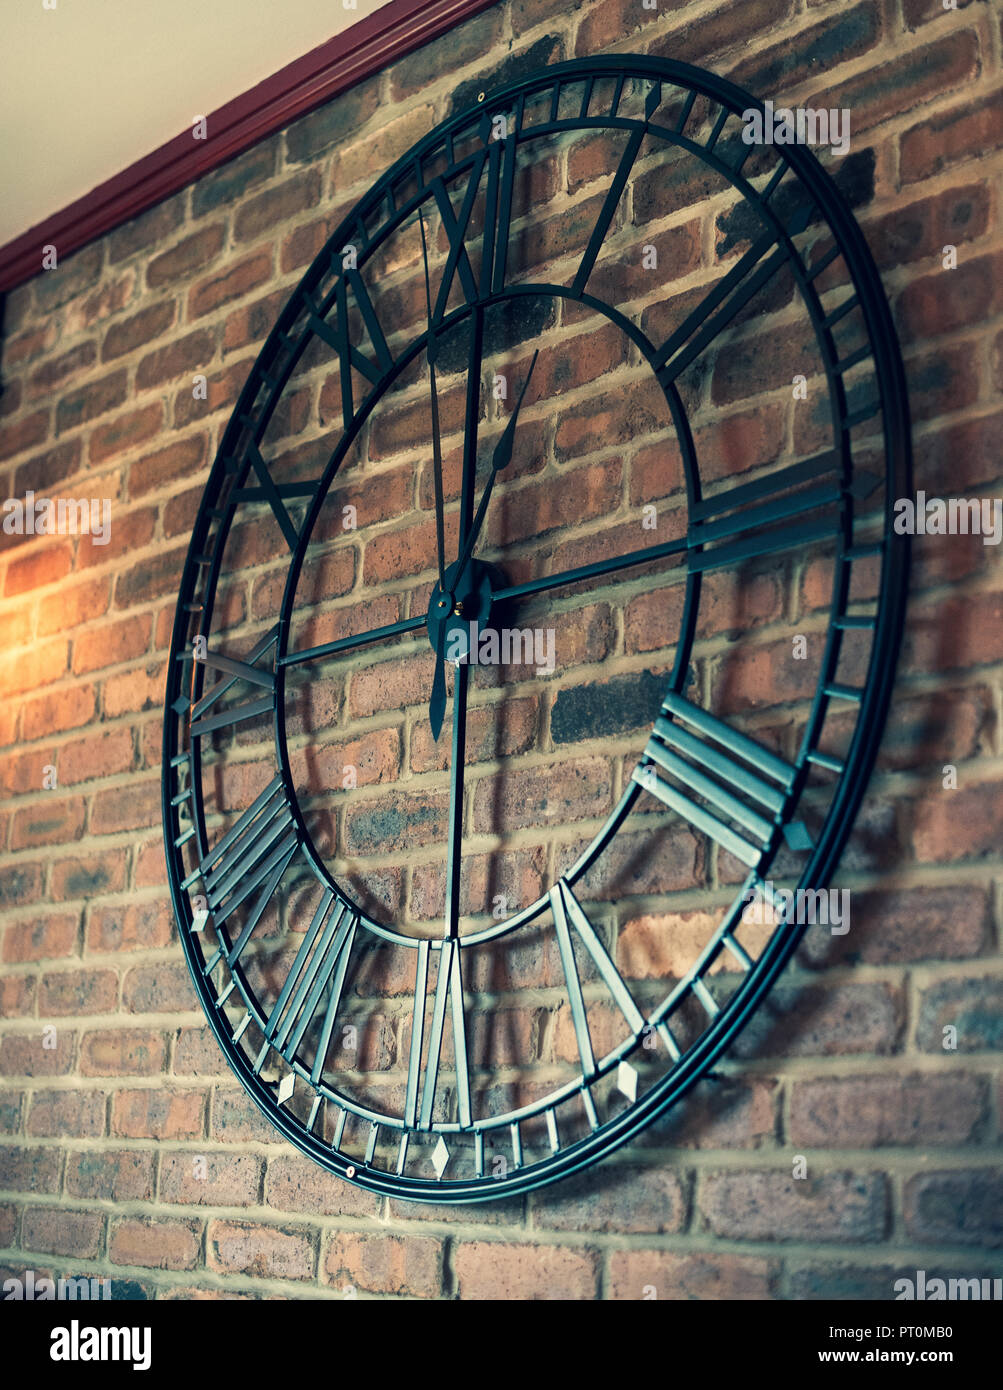 A Large Metal Clock On A Brick Wall In Daylight Stock Photo Alamy